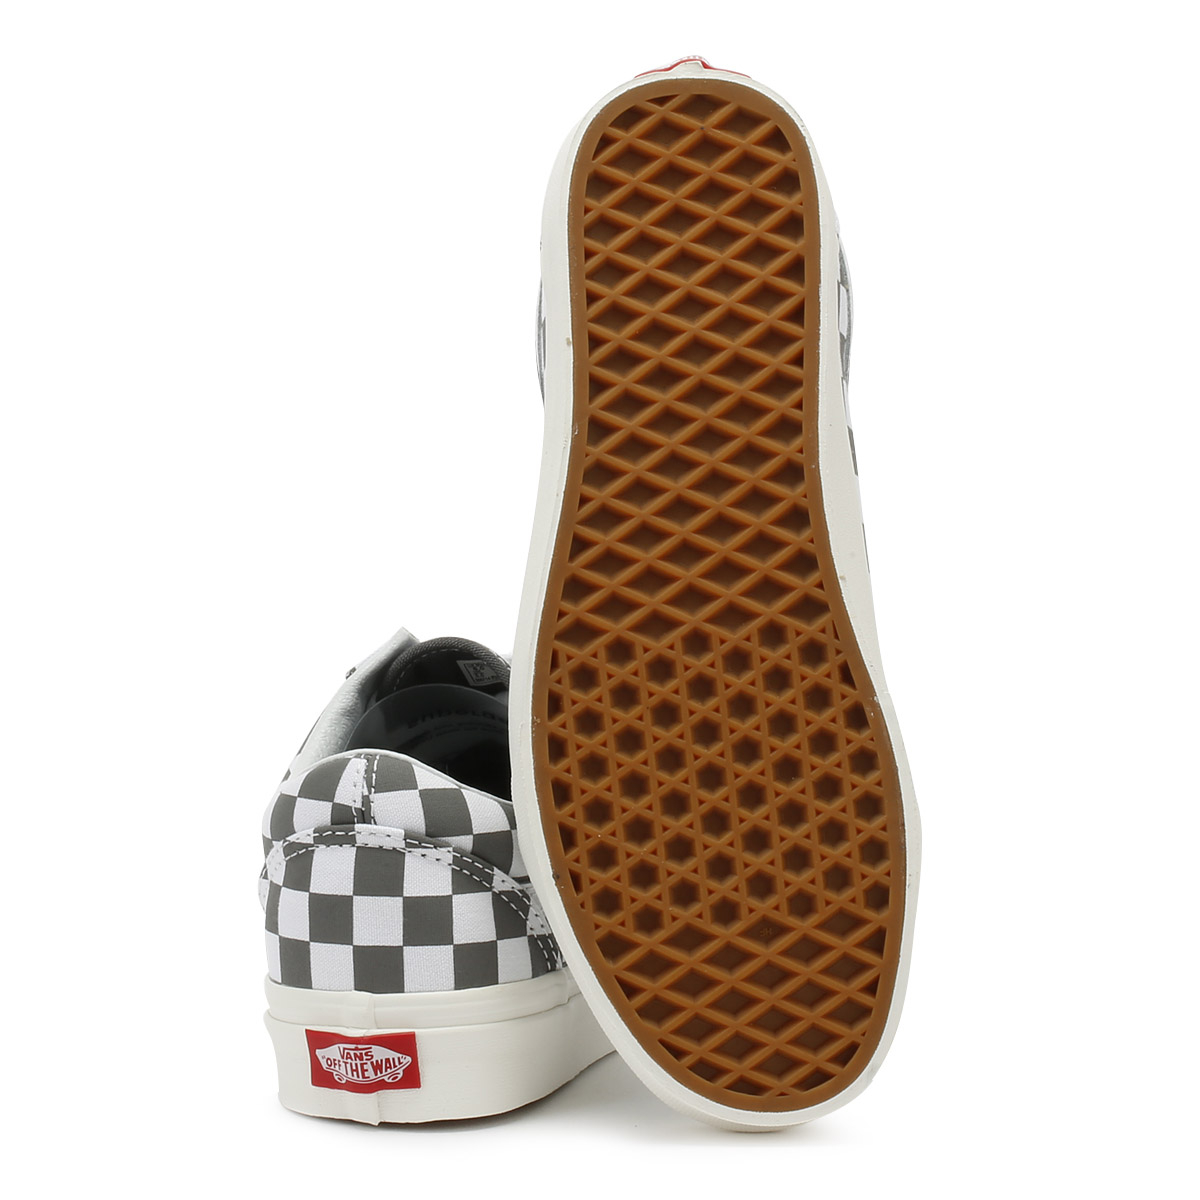 Vans Up  Uomo Trainers Pewter Grau & Marshmallow Lace Up Vans Old Skool Skate Schuhes 7f6fe9